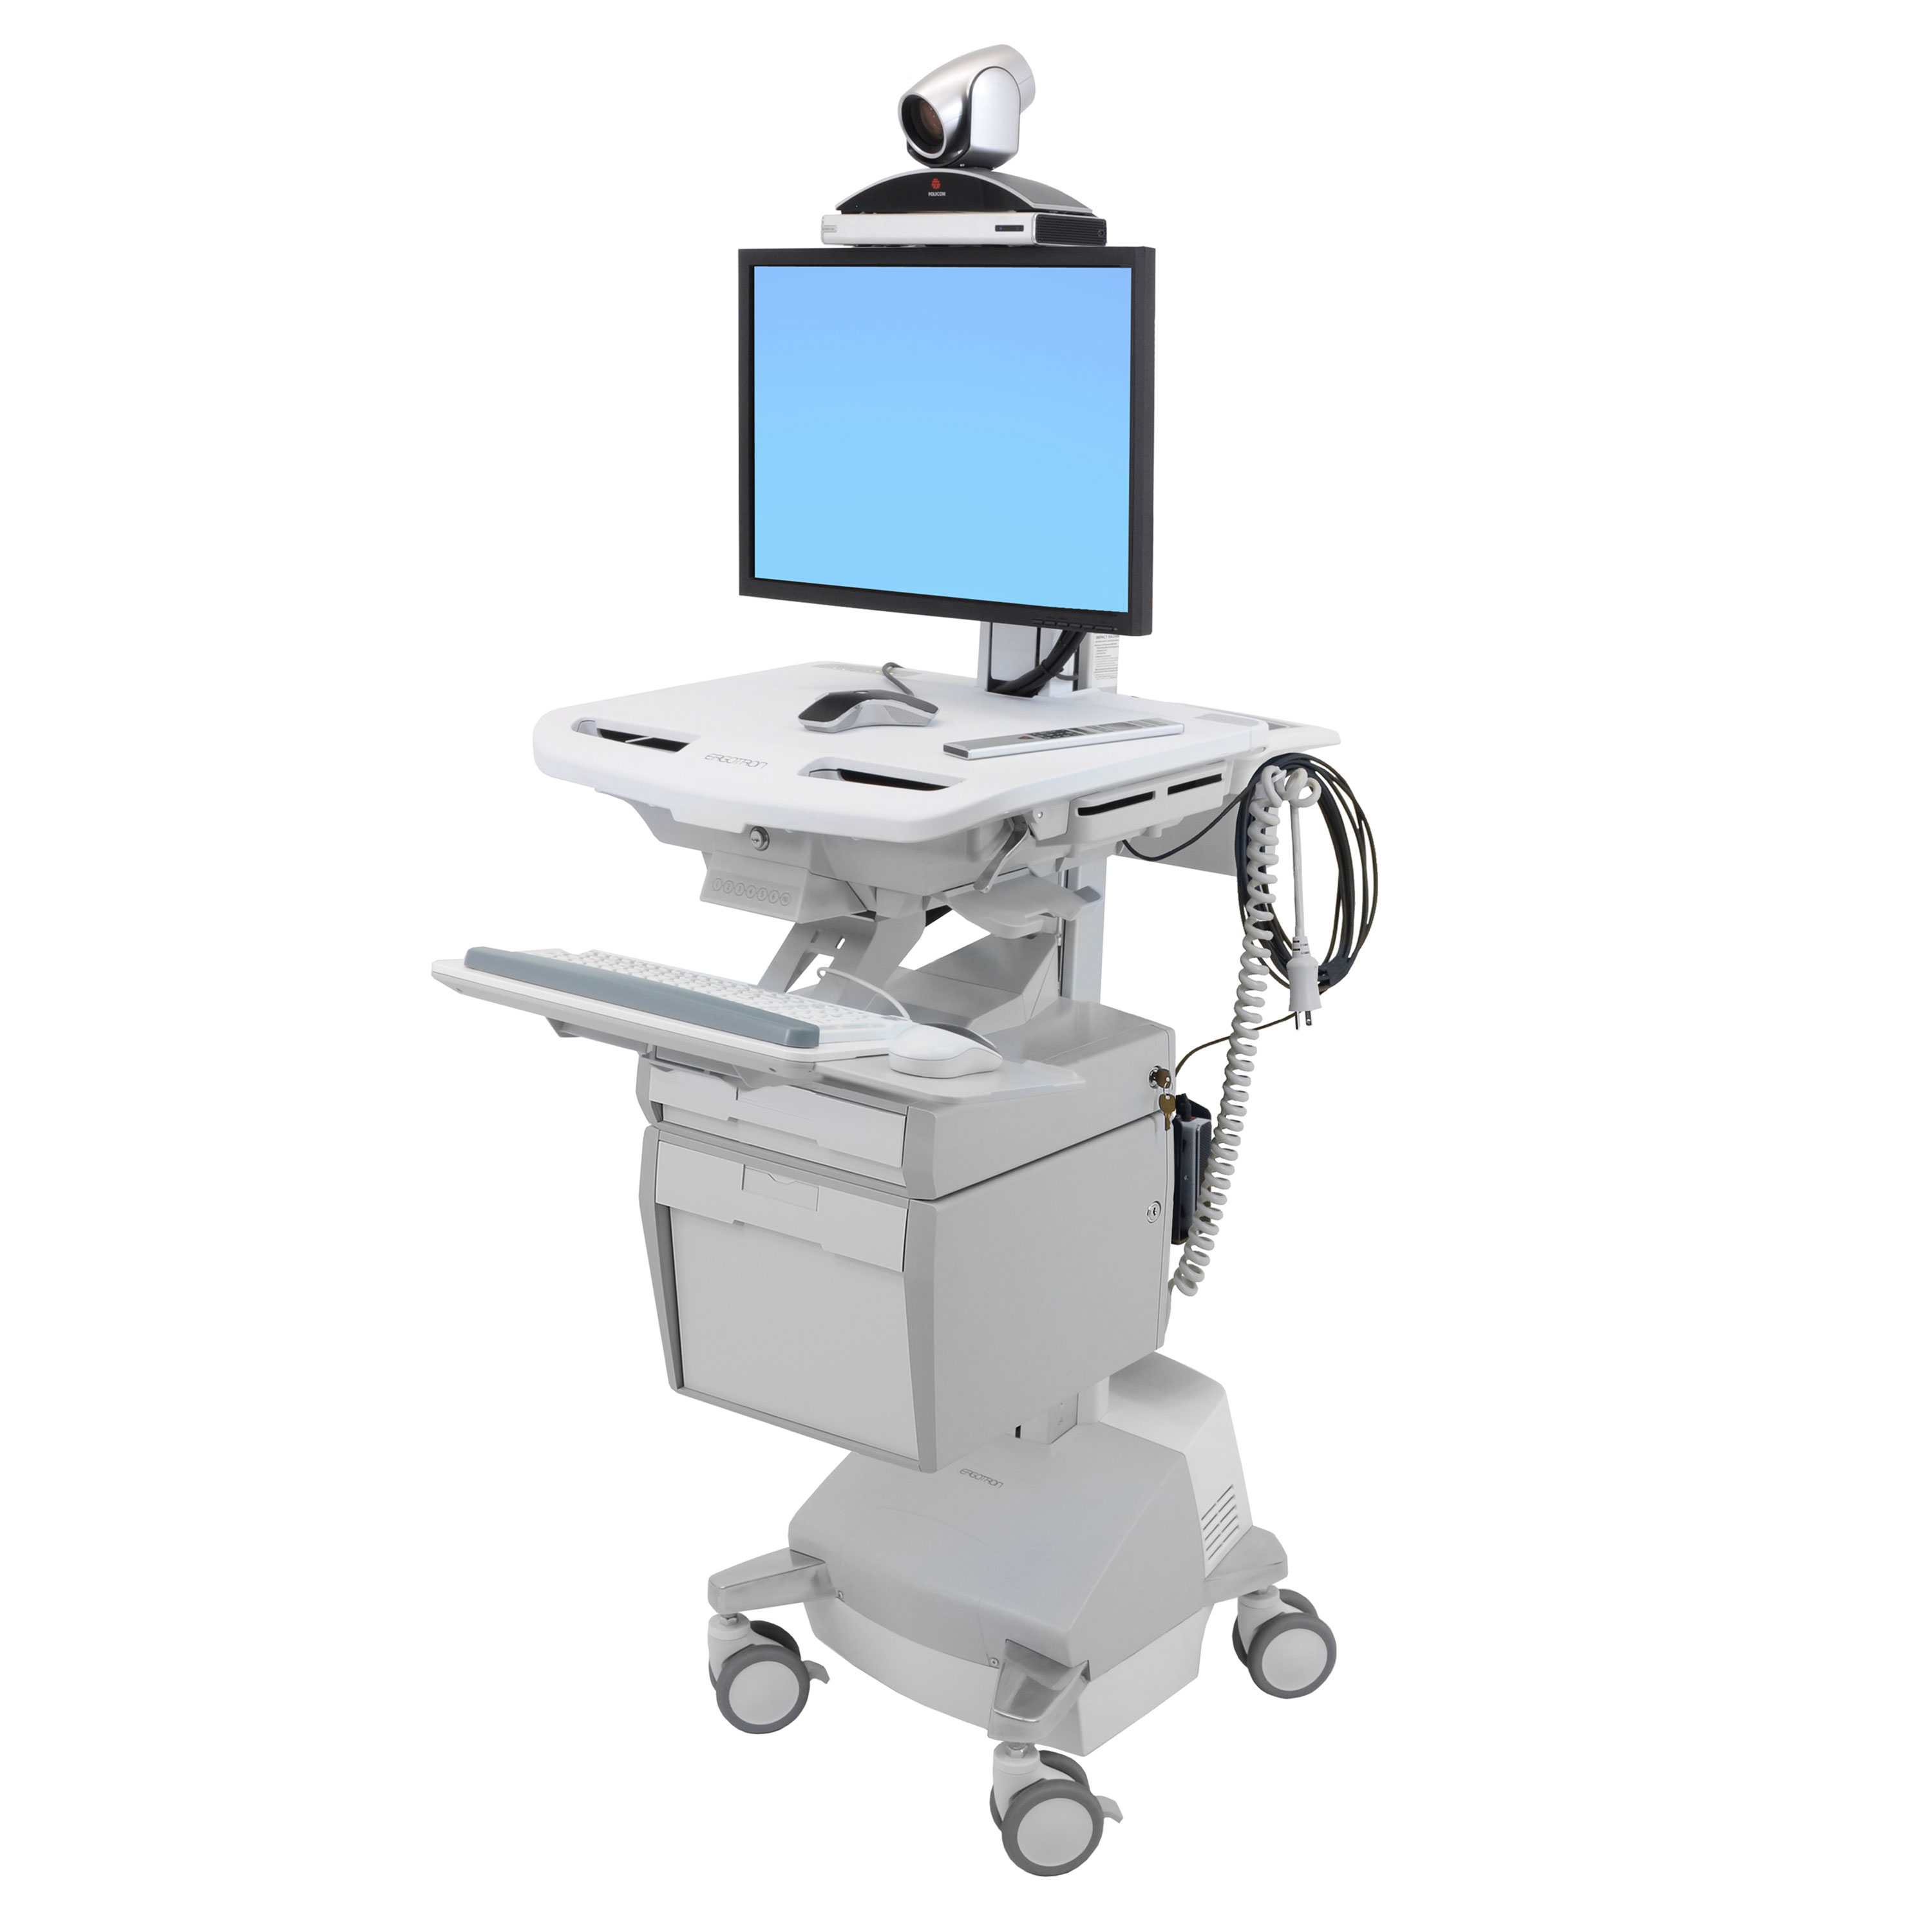 Ergotron SV44-53T1 StyleView Telemedicine Cart for